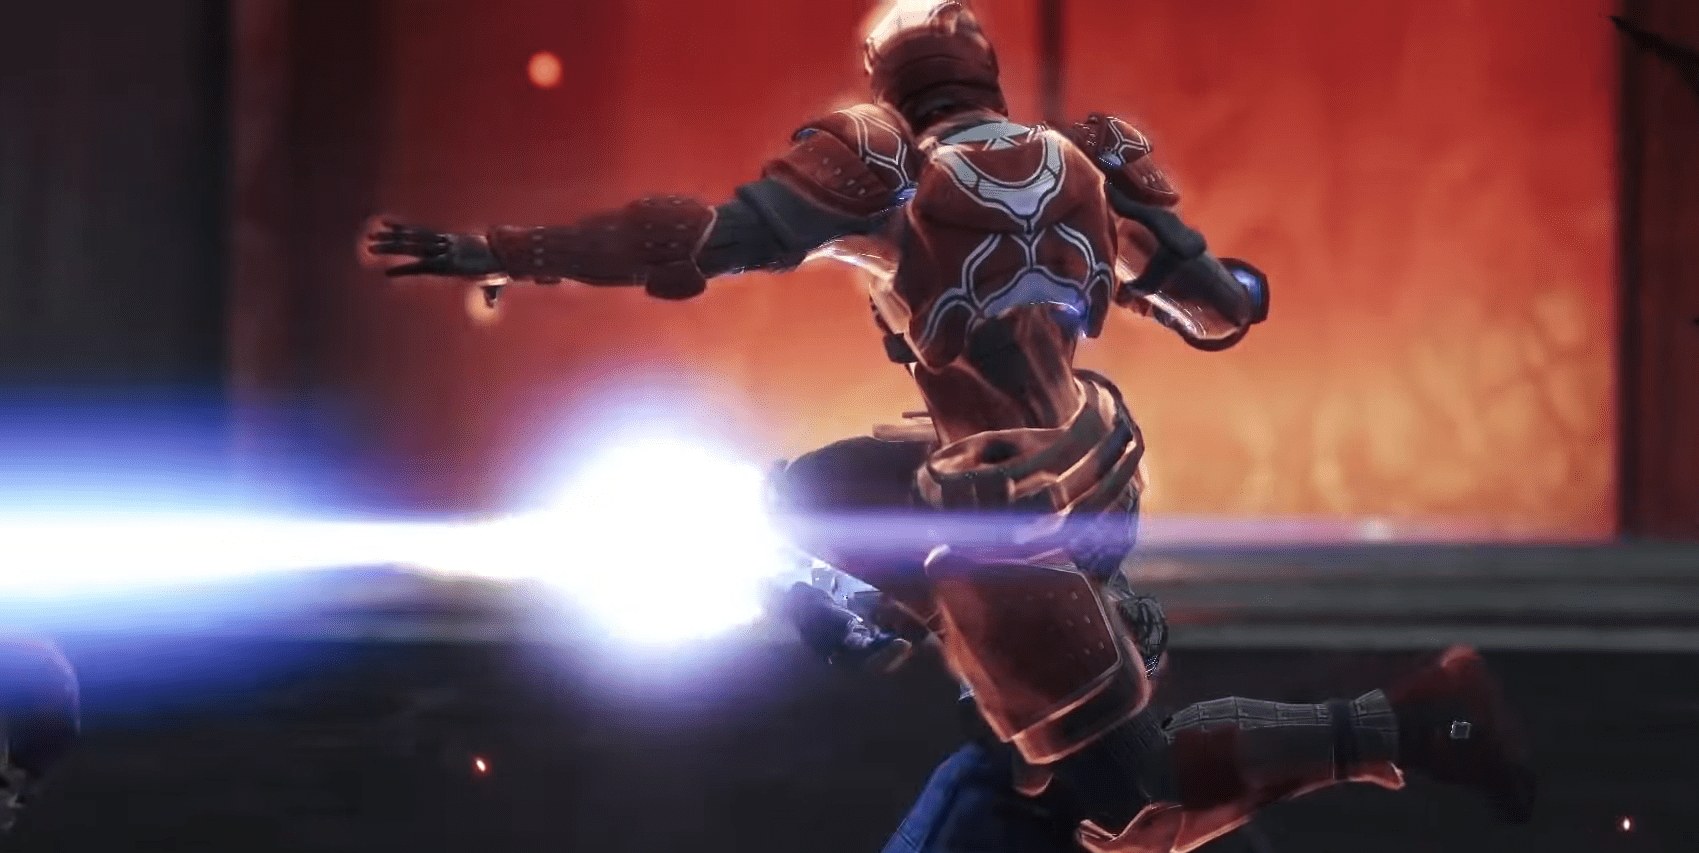 Finishing Moves And Abilities Revealed! DLC Content For Destiny 2 Shadowkeep